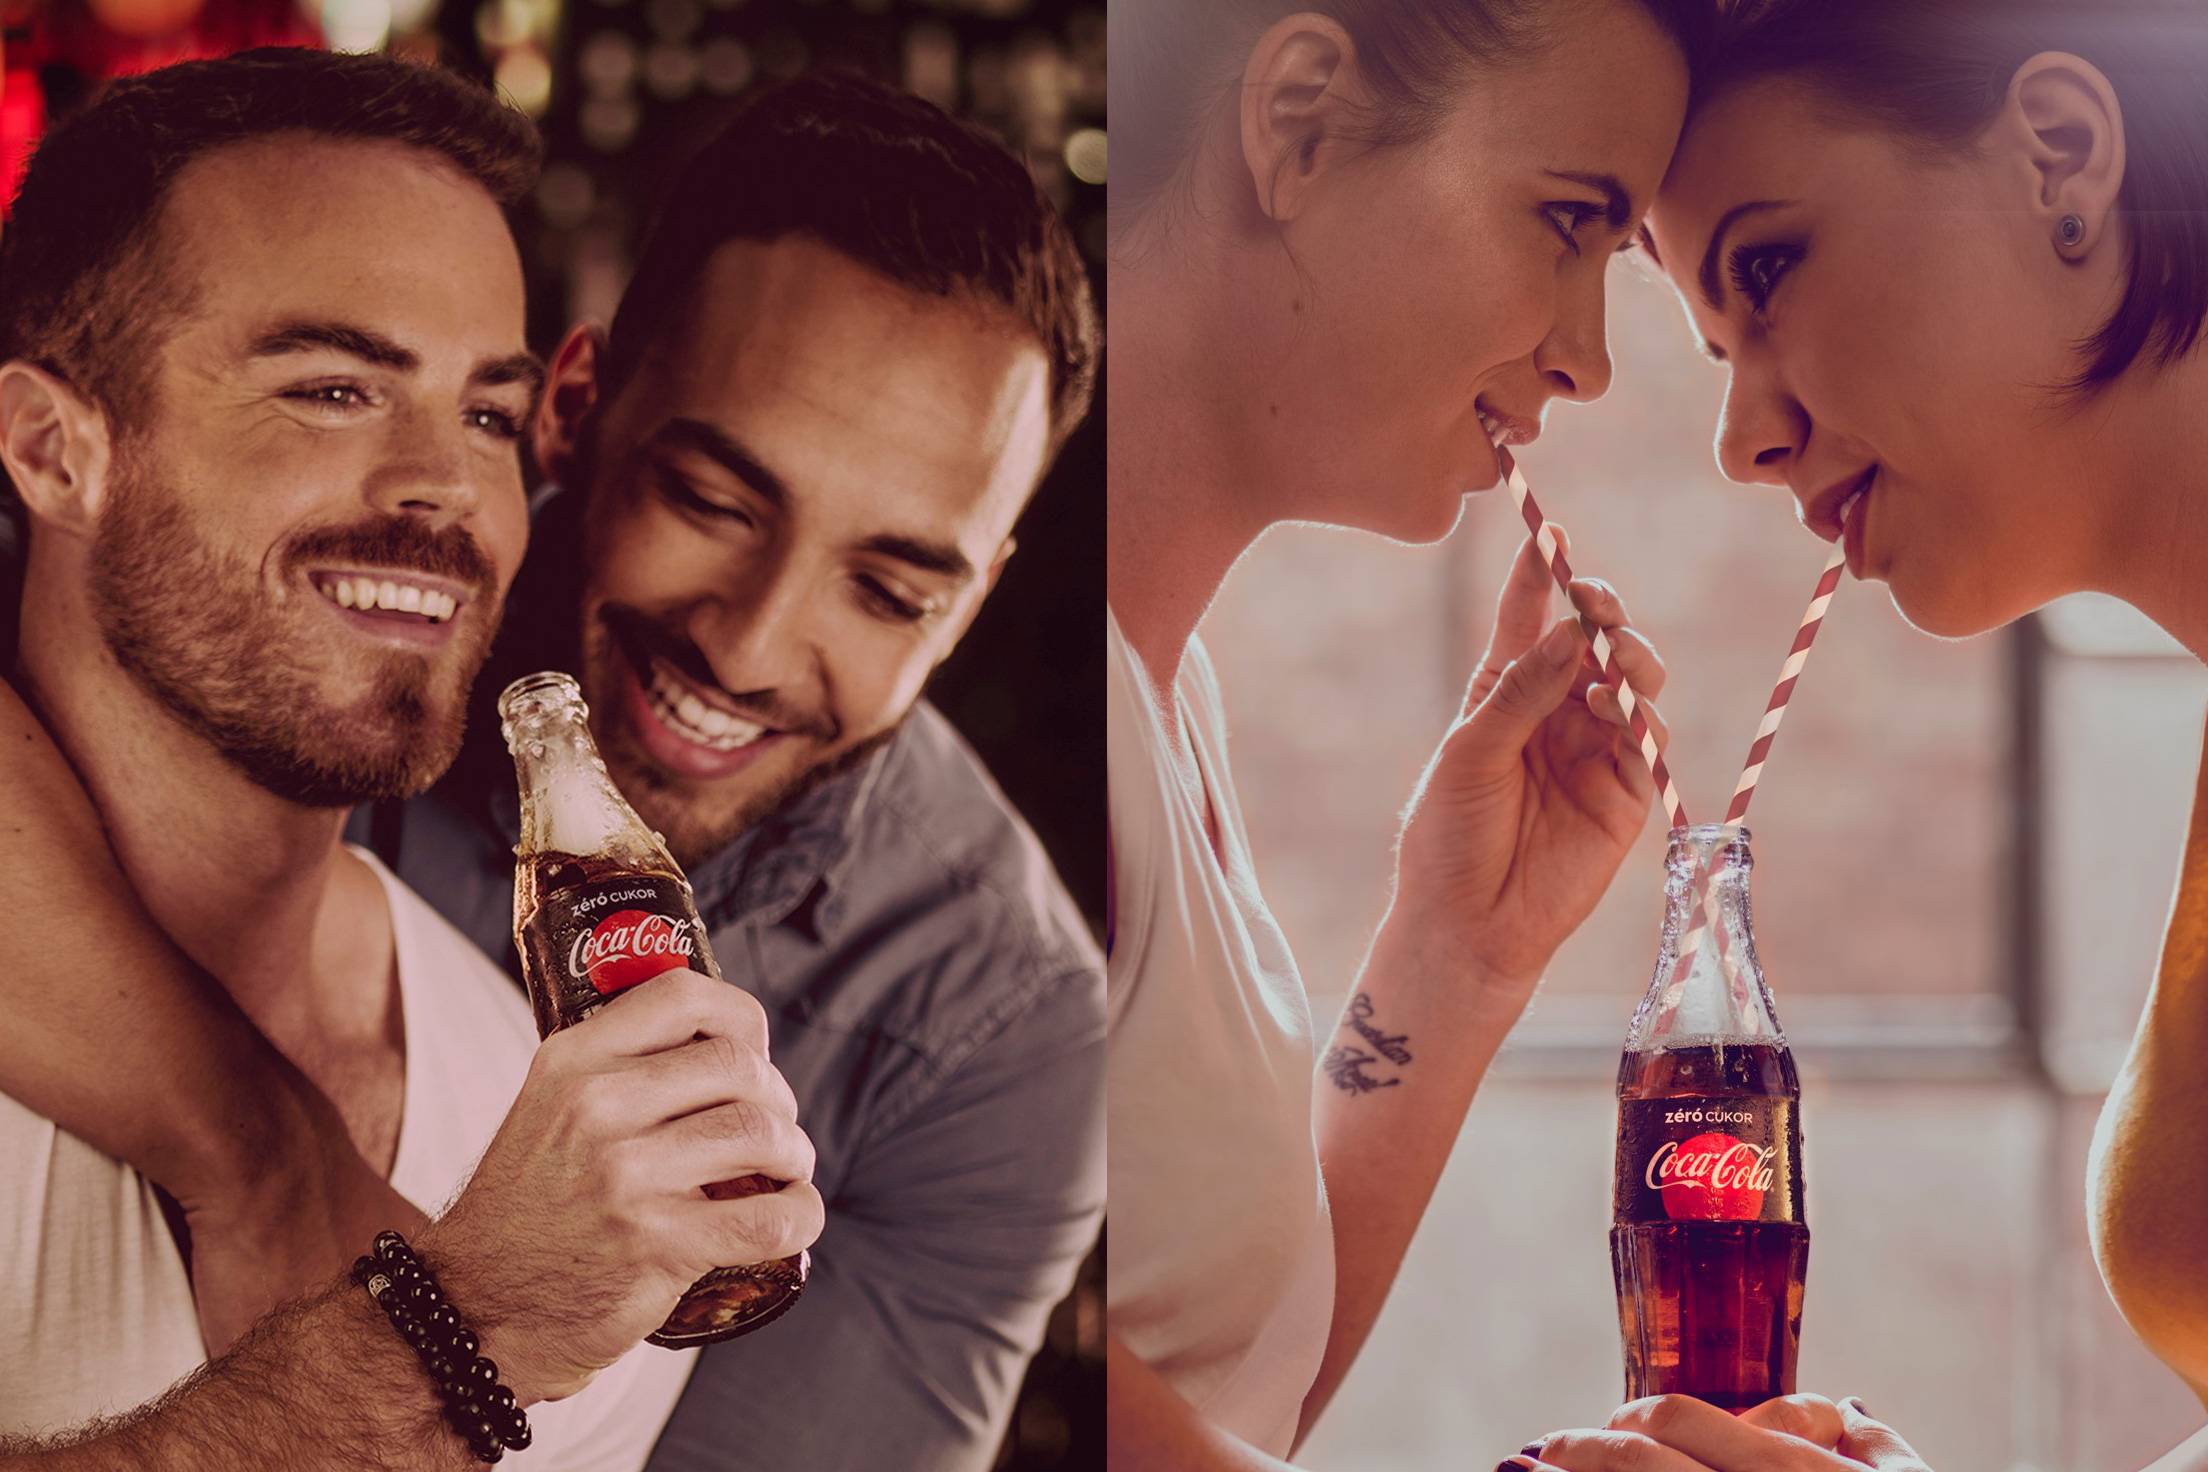 Coca-Cola's 'Equal Love' ads spark fury in Hungary